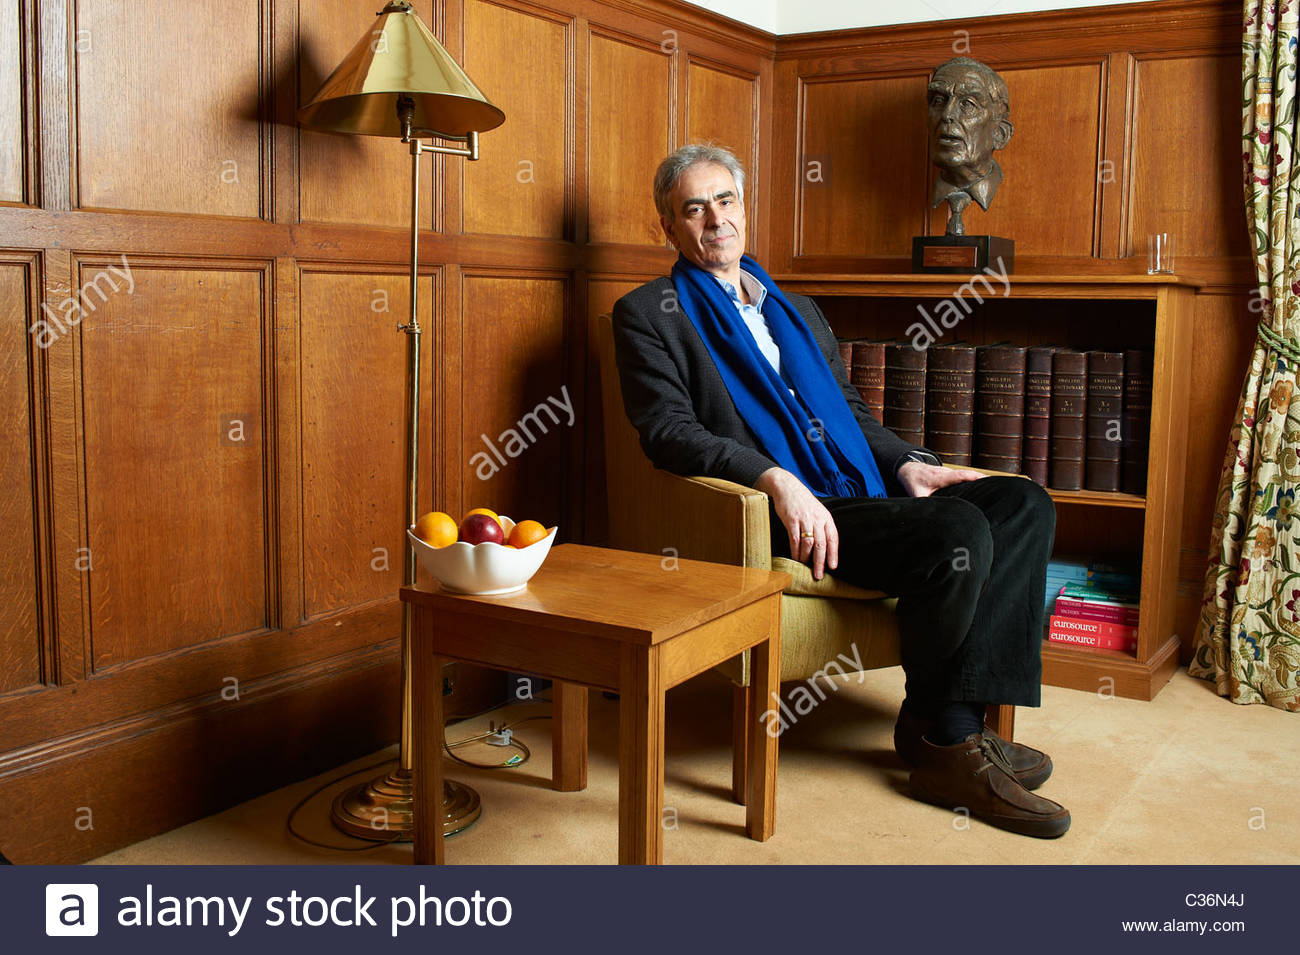 Martin Gayford,art critic , at The Oxford Literary Festival 2011 in Christchurch, Oxford UK. CREDIT Geraint Lewis - Stock Image